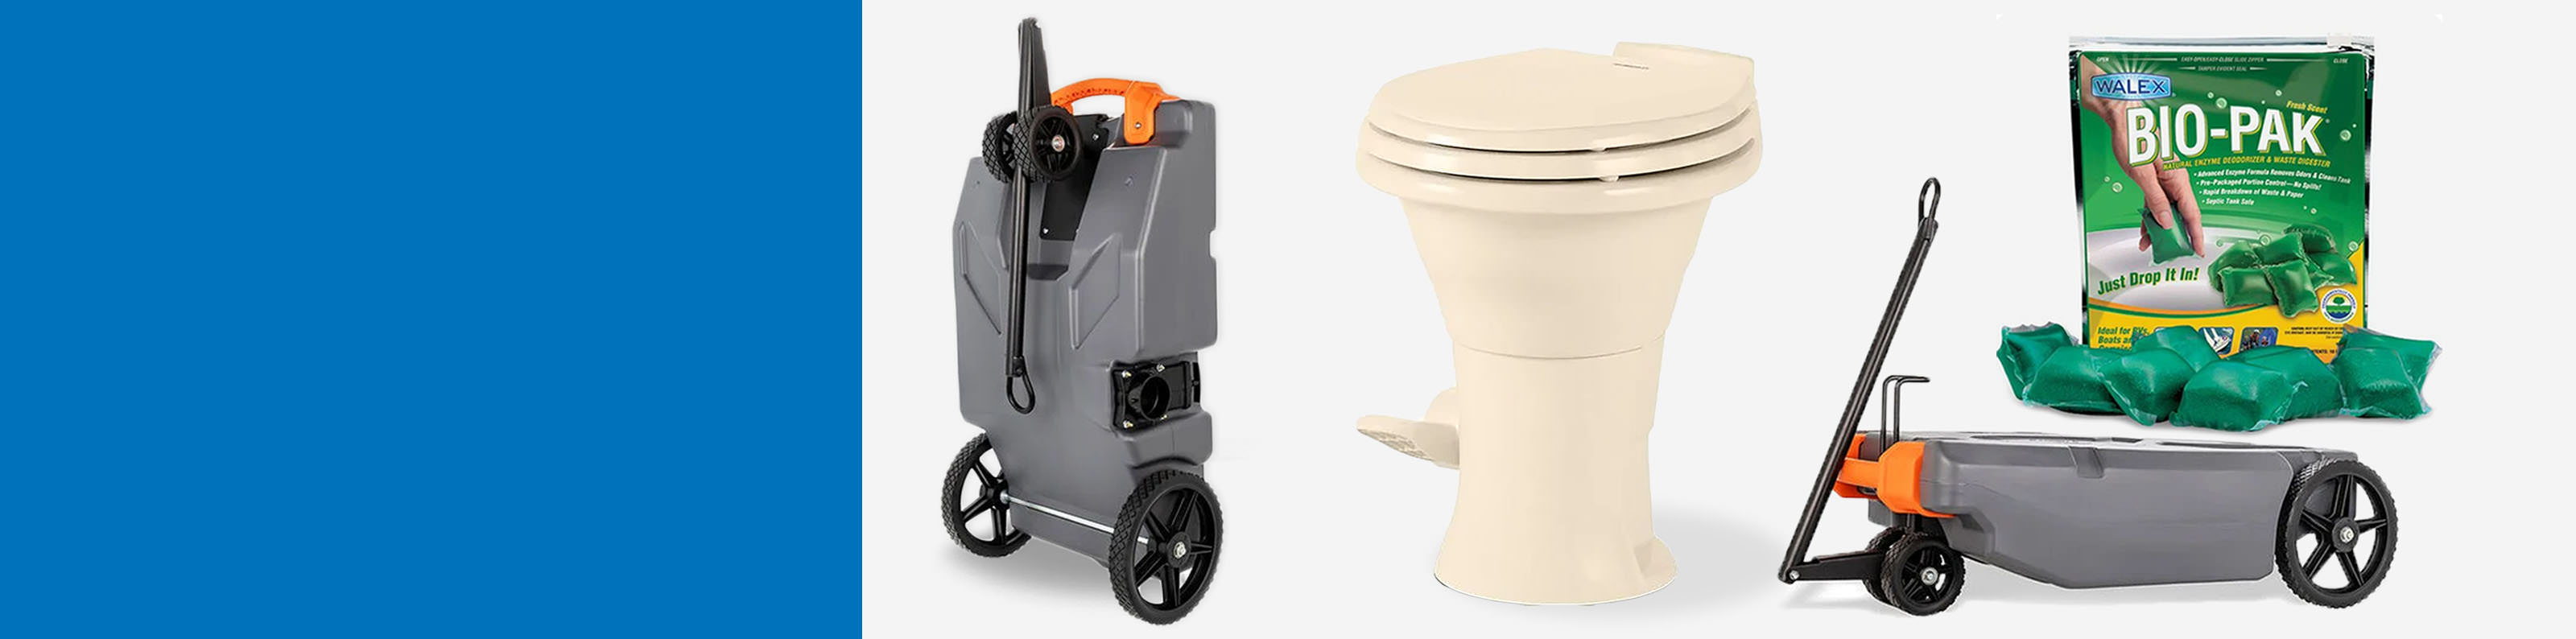 The Most Reliable RV Sewer Products - Up to 35% off RV Toilets, Tote Tanks & Chemicals